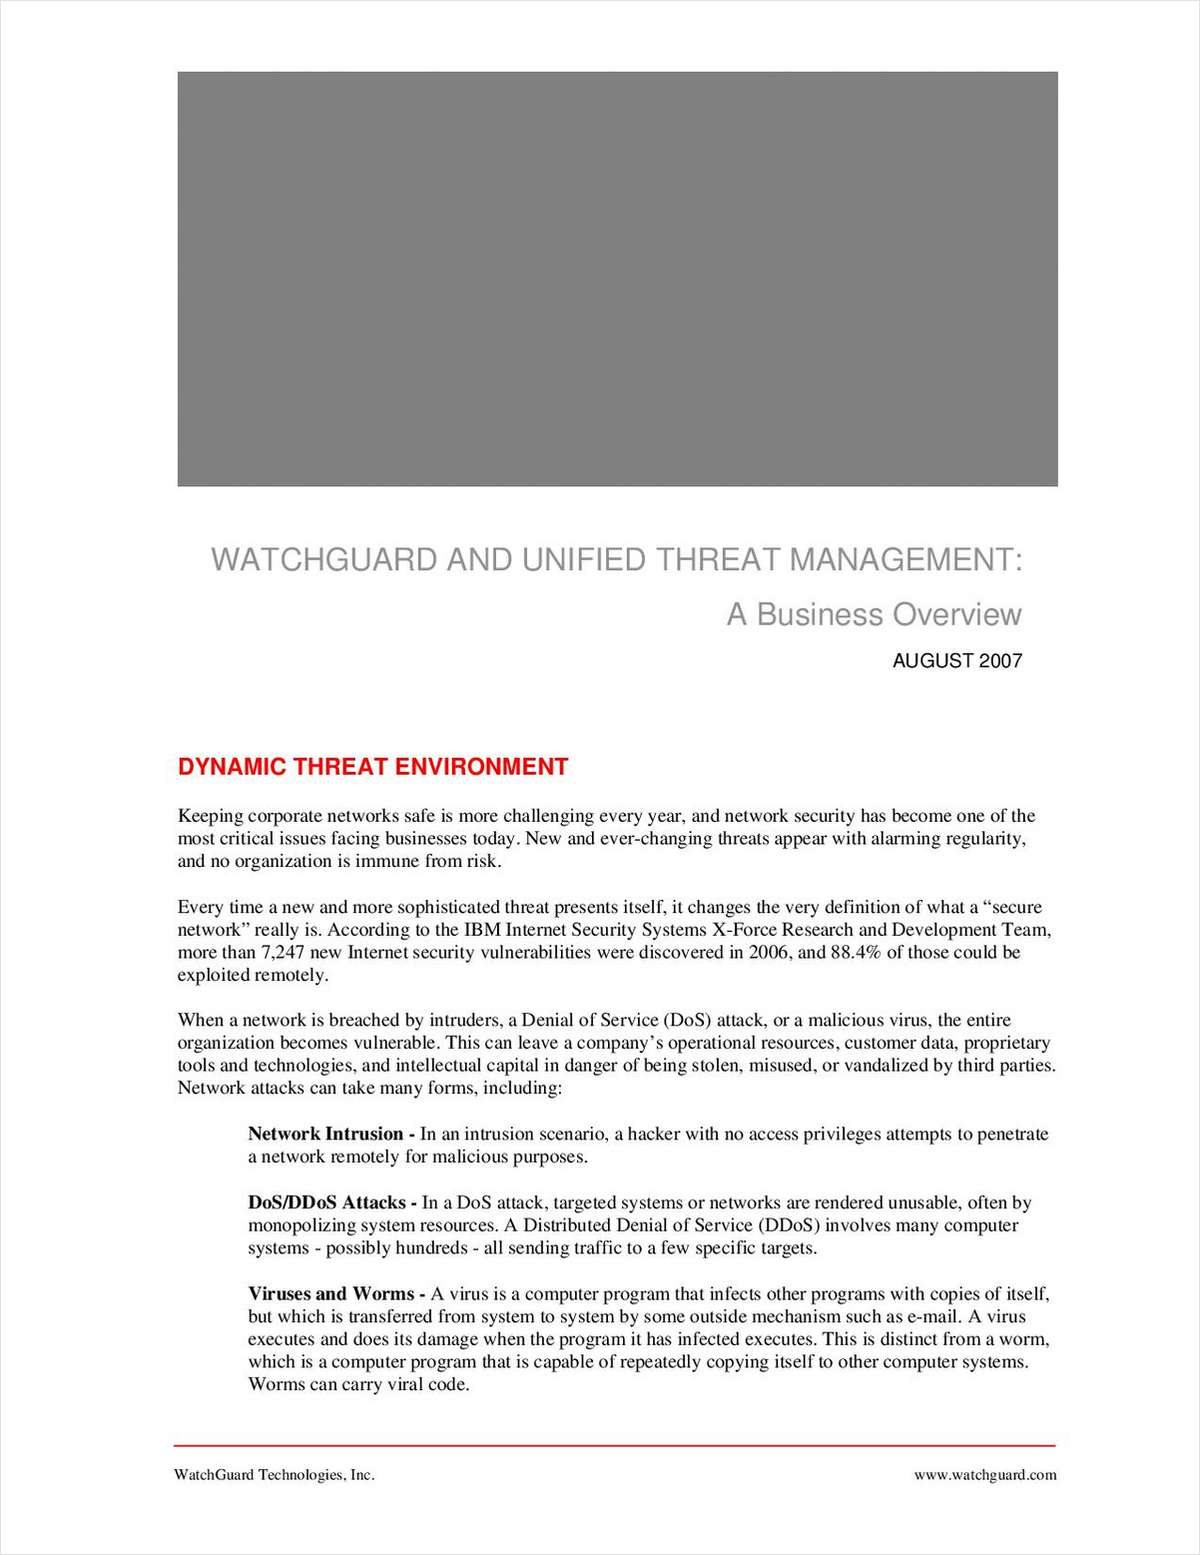 Unified Threat Management: How to Stop Spyware, Spam, Viruses, and Other Malicious Attacks